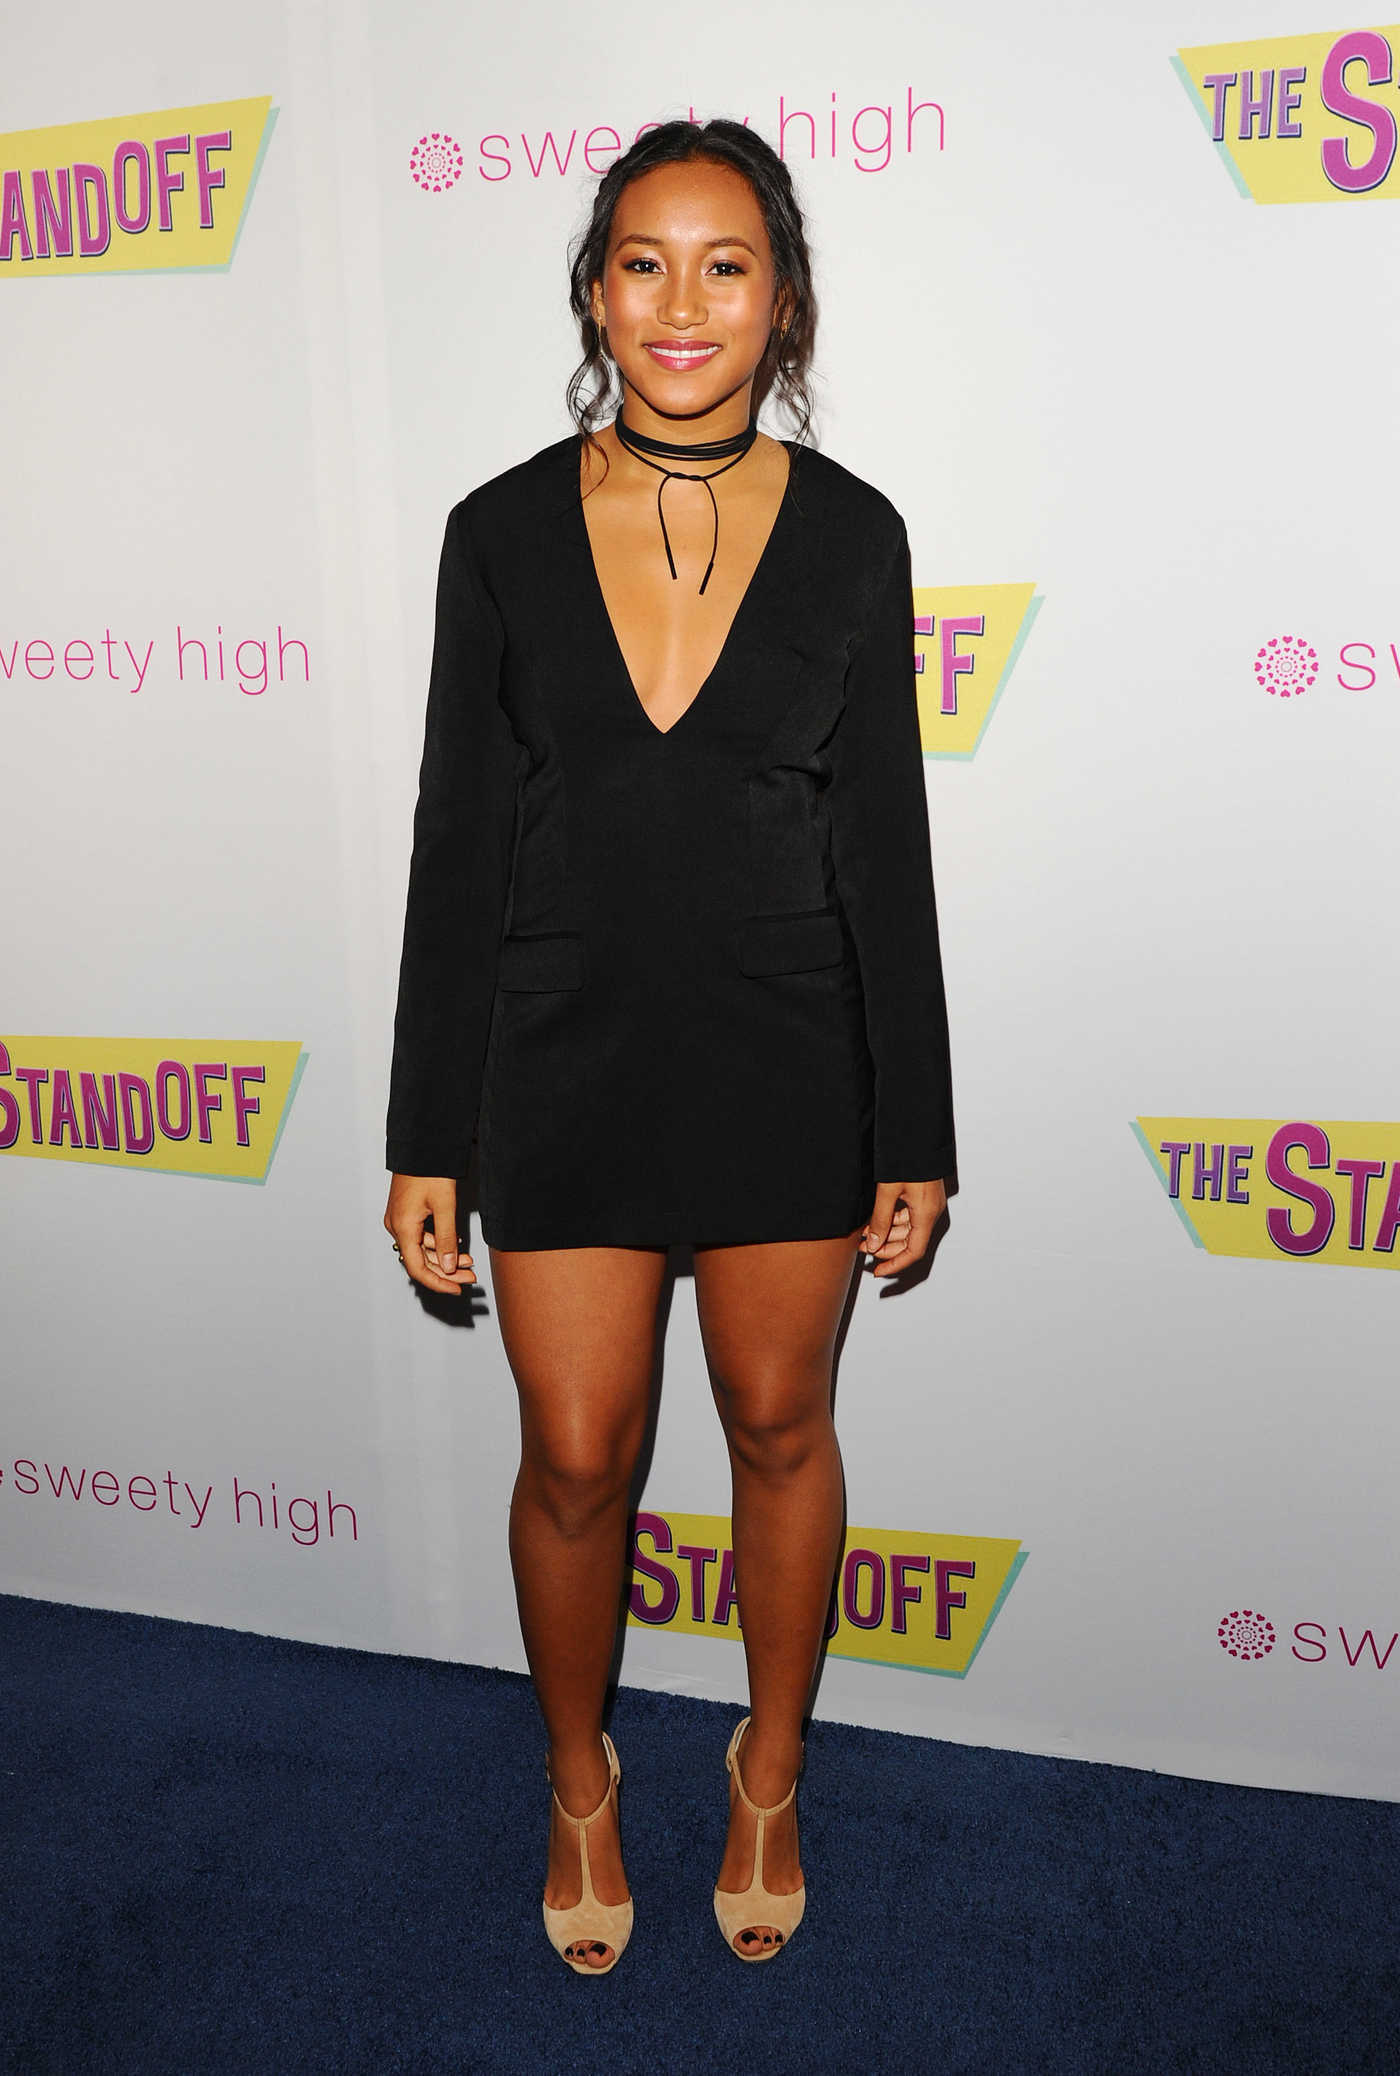 Sydney Park at The Standoff Premiere in Los Angeles 09/08/2016